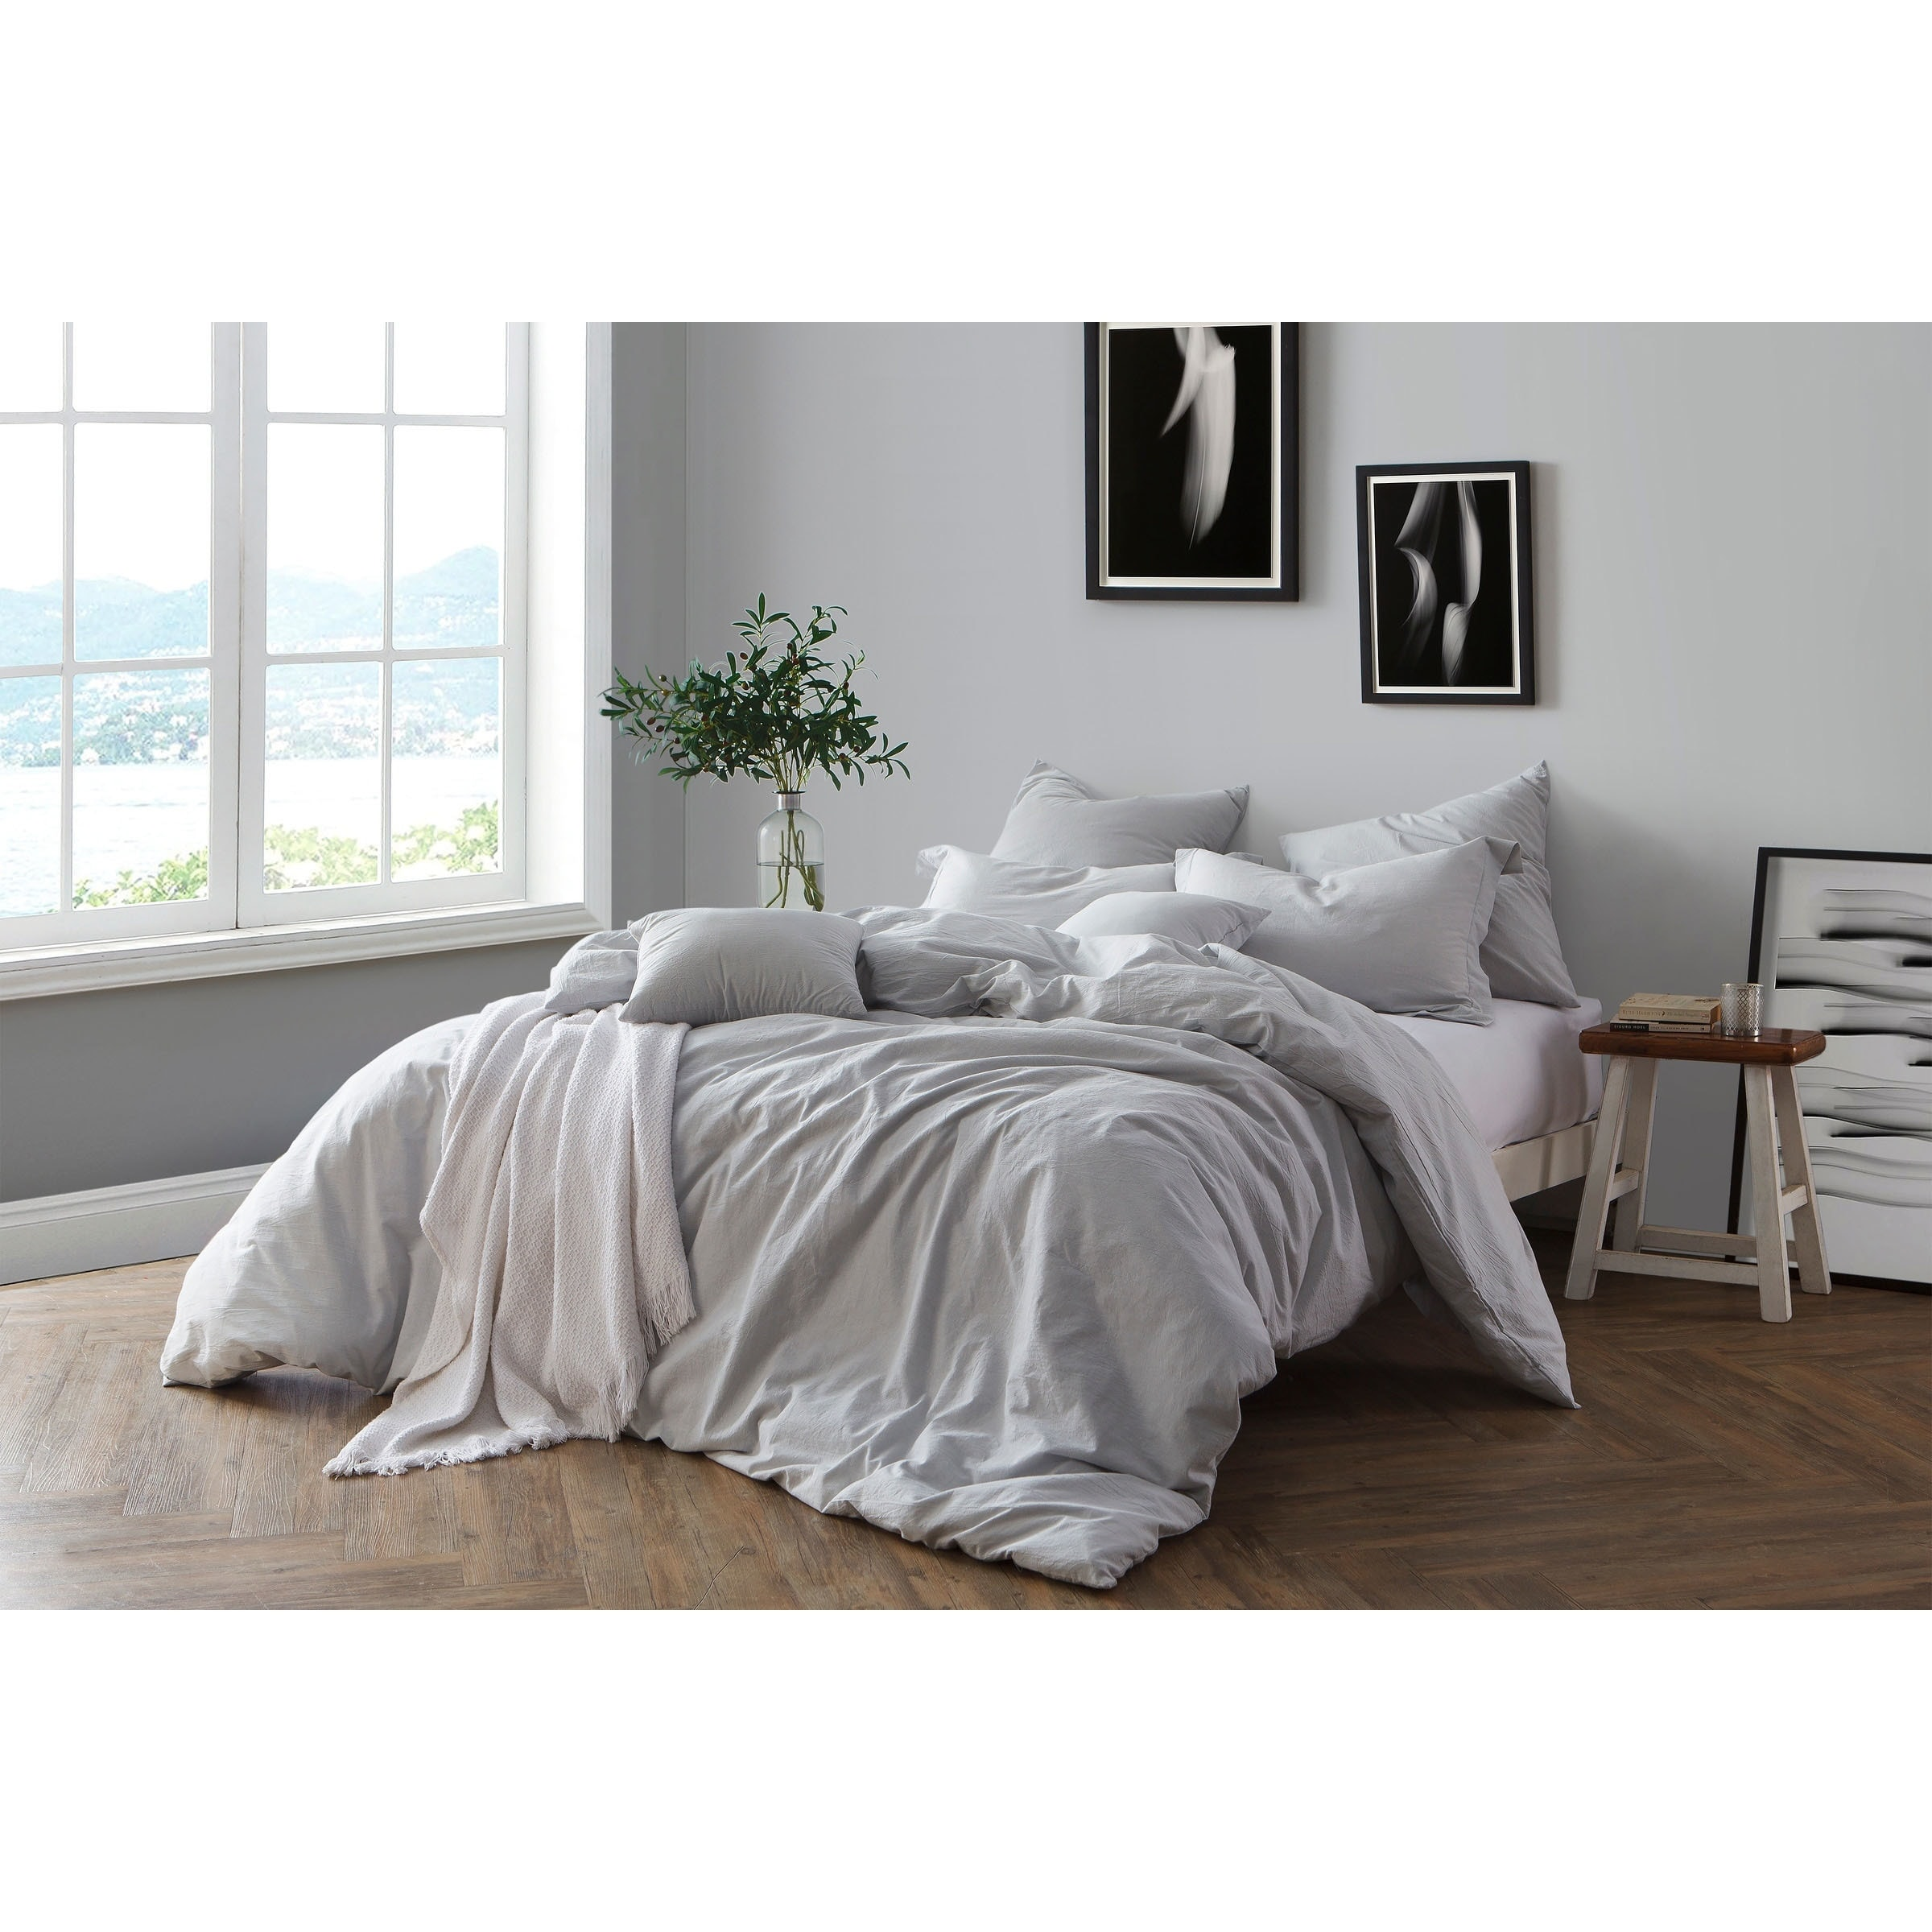 Luxury Cotton Rich Soft Chambray Yarn Dyed Woven Stripe Striped Duvet Cover Set